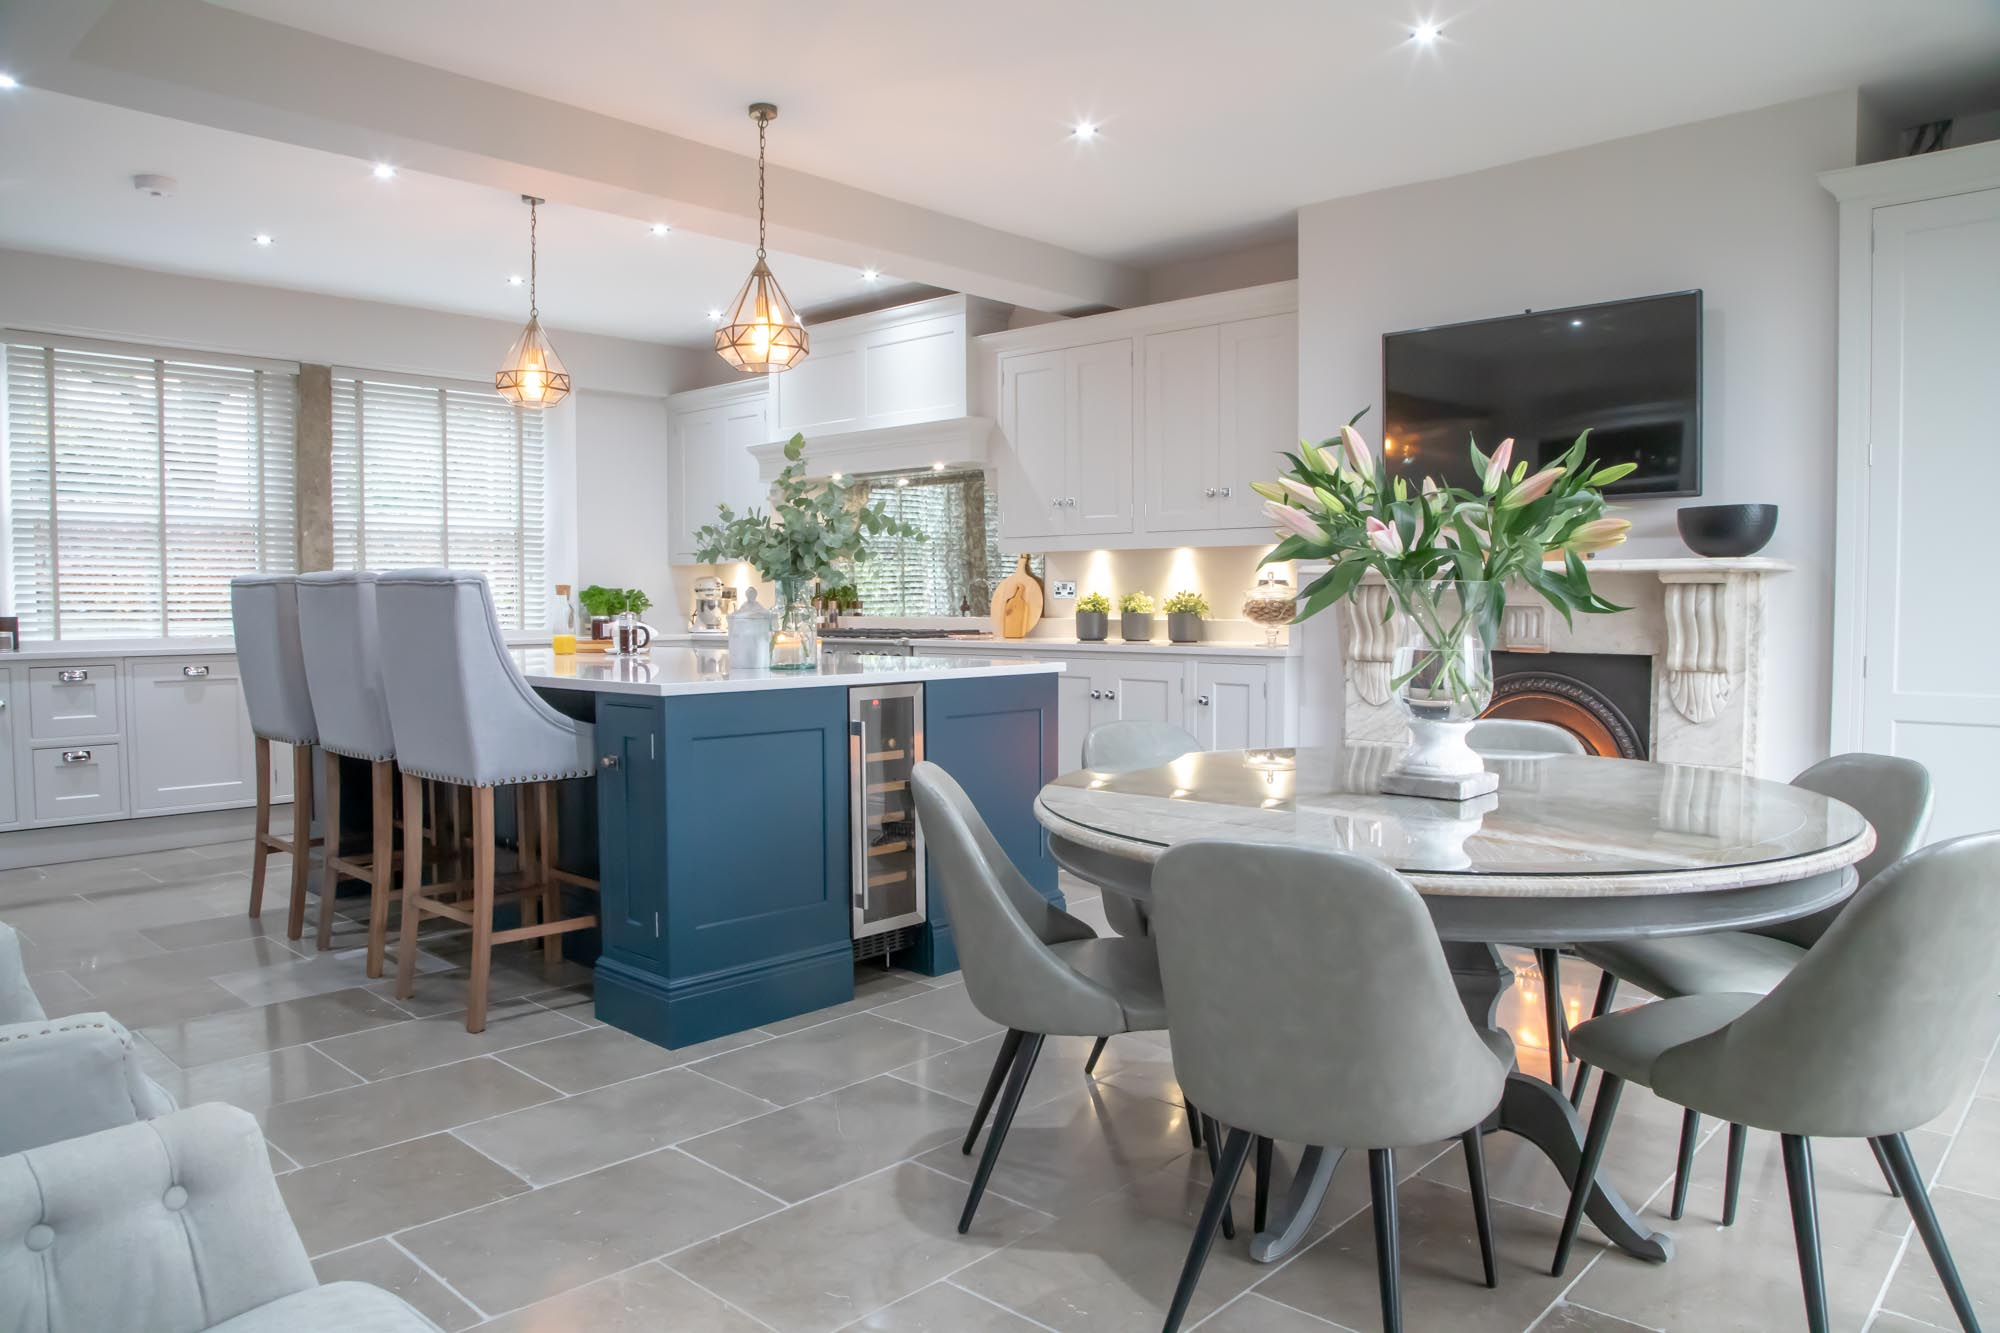 Smart Navy Kitchens For Every Style Made In Sheffield